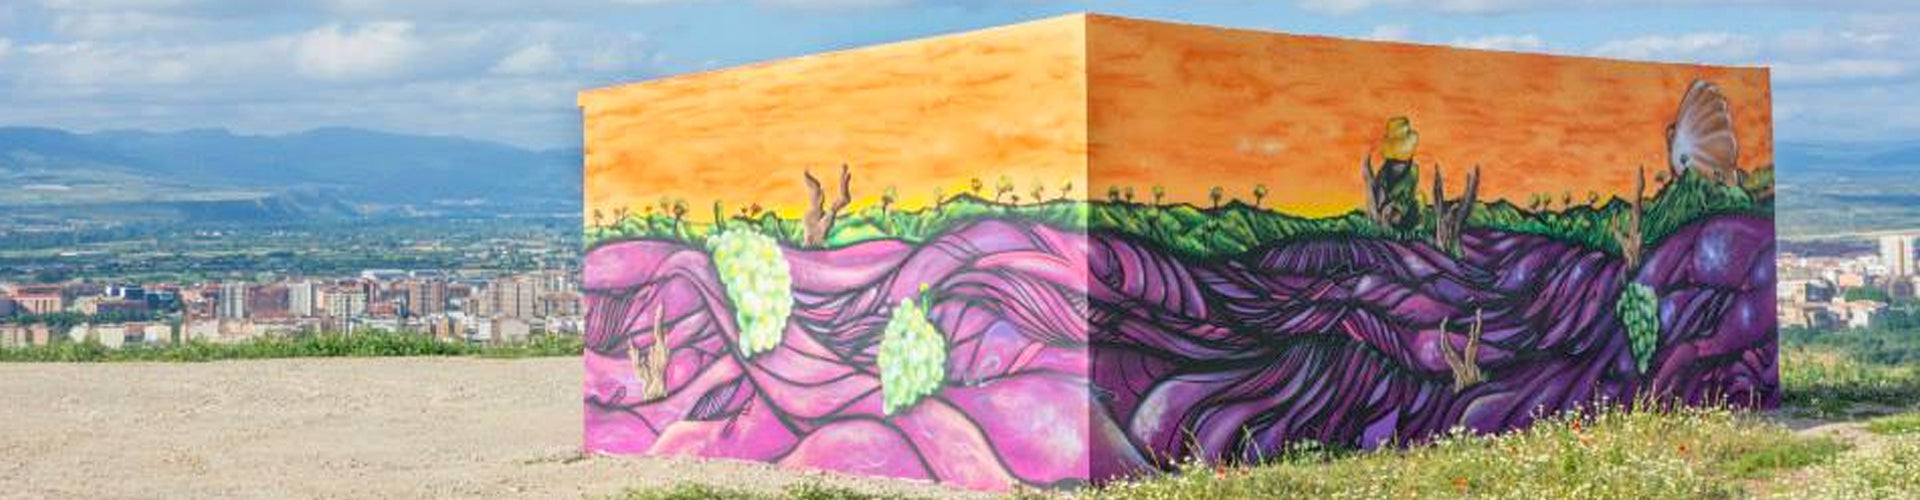 Artwork by Chavolar on building at the Alto Cantabri Vineyard